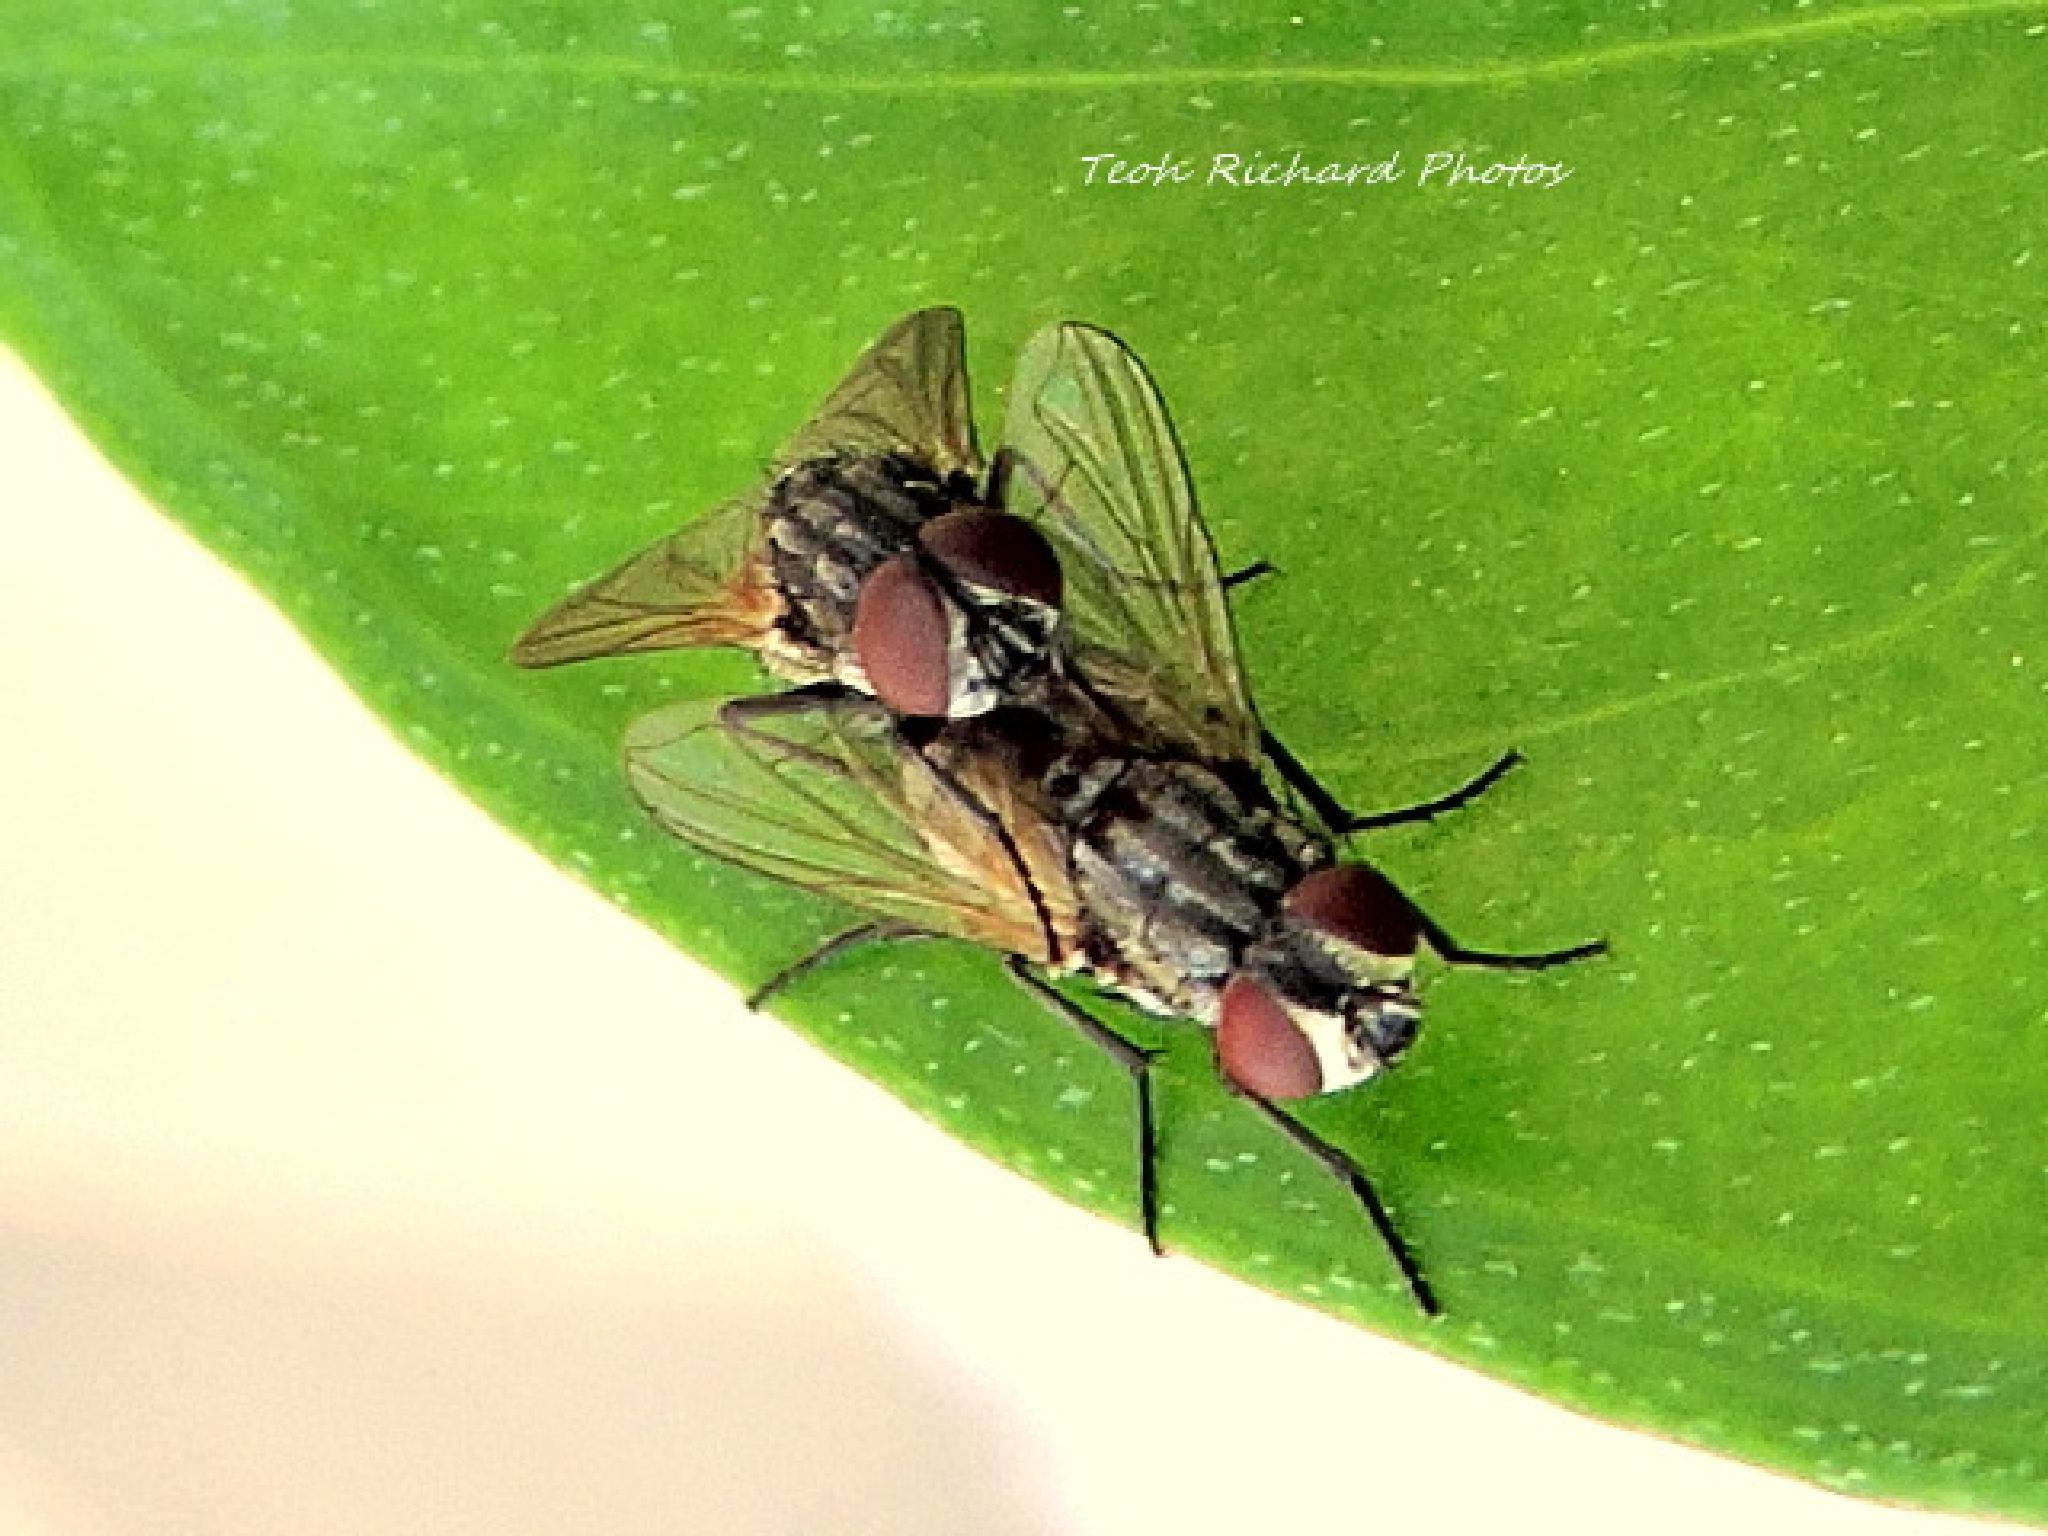 Fly 5 Mating by teoh.richard.15